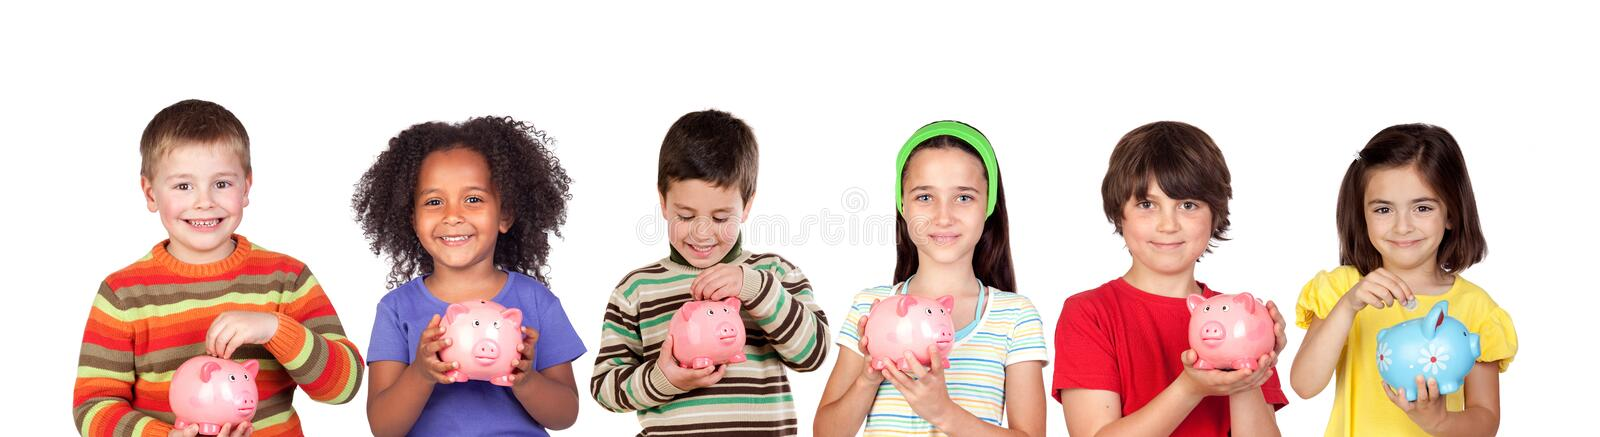 Happy children with piggy-banks royalty free stock photography